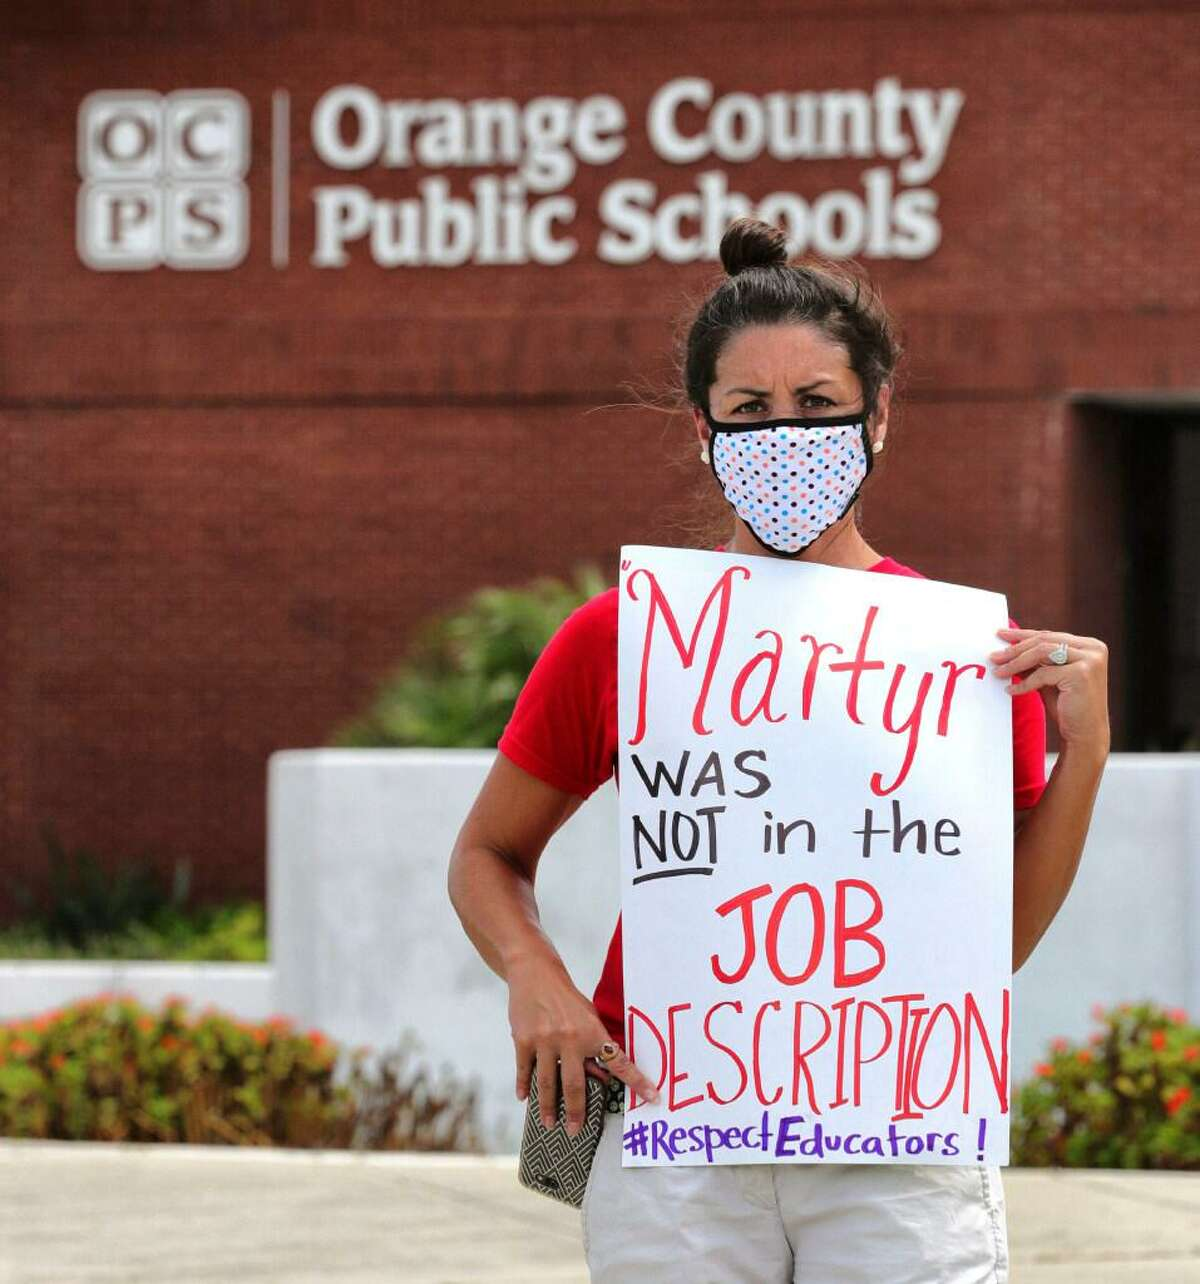 In this Tuesday, July 7, 2020 file photo, Rachel Bardes holds a sign in front of the Orange County Public Schools headquarters as teachers protest with a car parade around the administration center in downtown Orlando, Fla. As pressure mounts for teachers to return to their classrooms this fall, concerns about the pandemic are pushing many toward alternatives, including career changes, as some mobilize to delay school reopenings in areas hardest hit by the coronavirus.